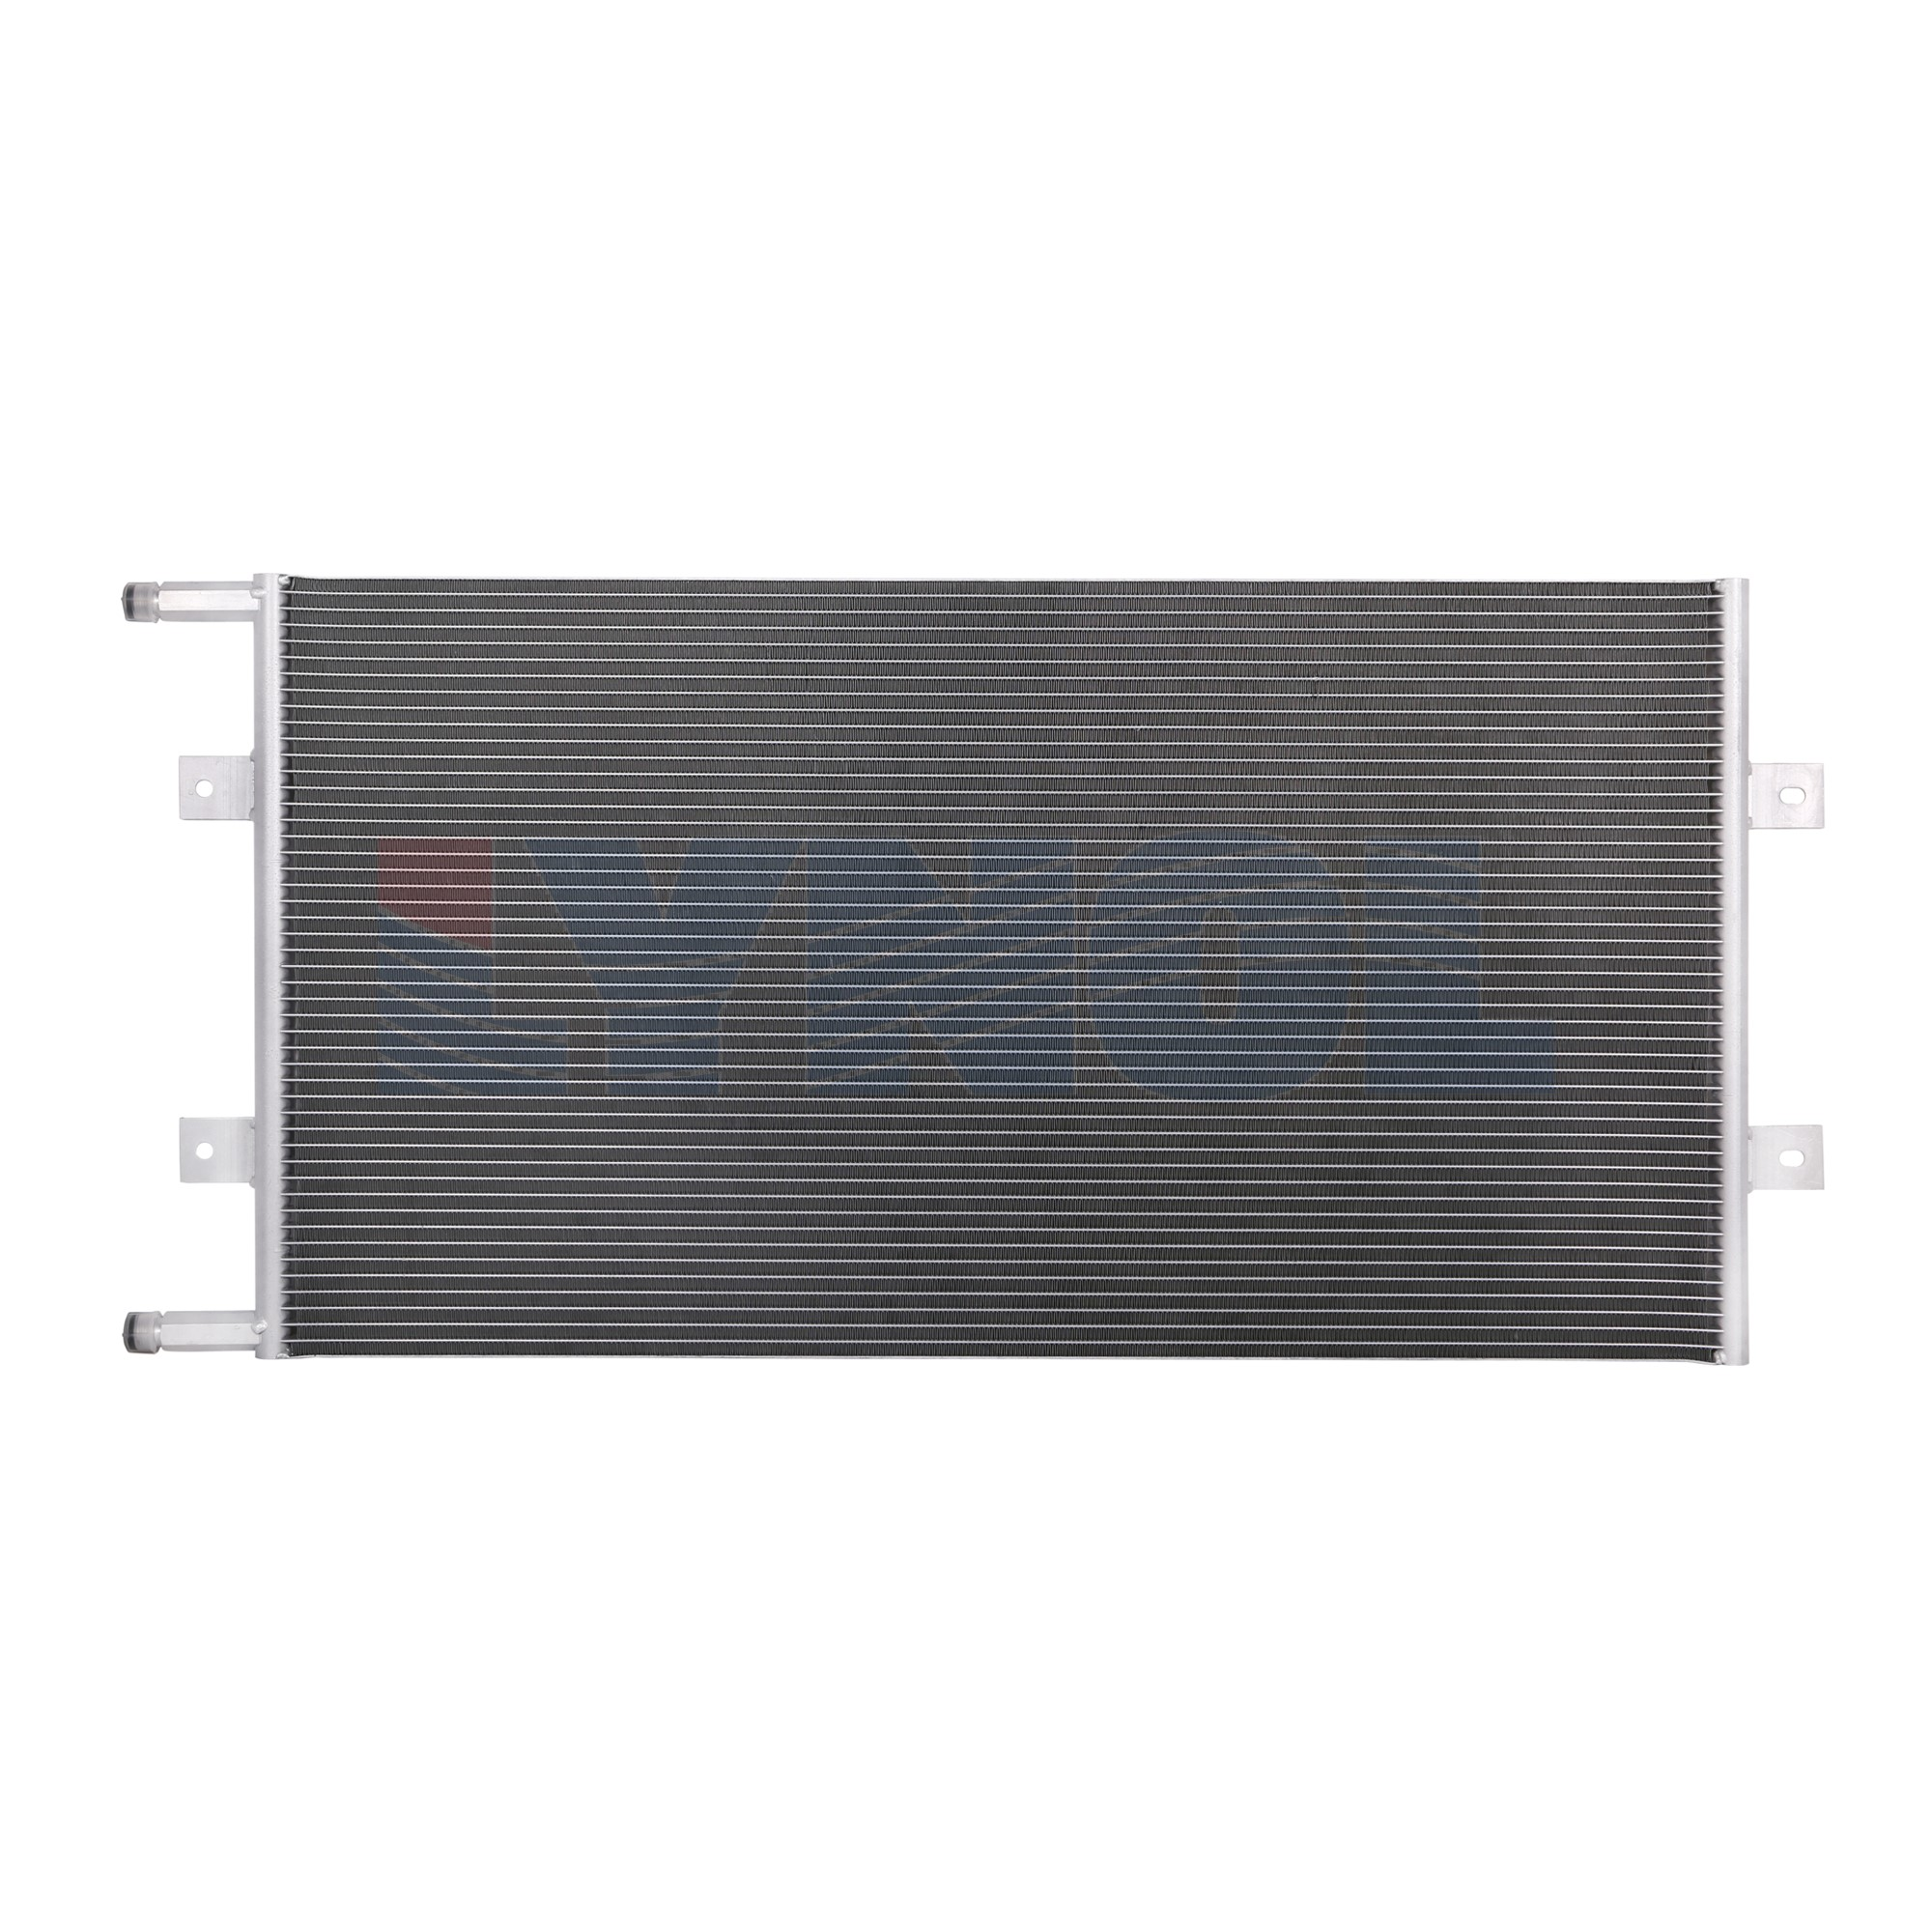 2502-003 - Ford / Sterling Condenser